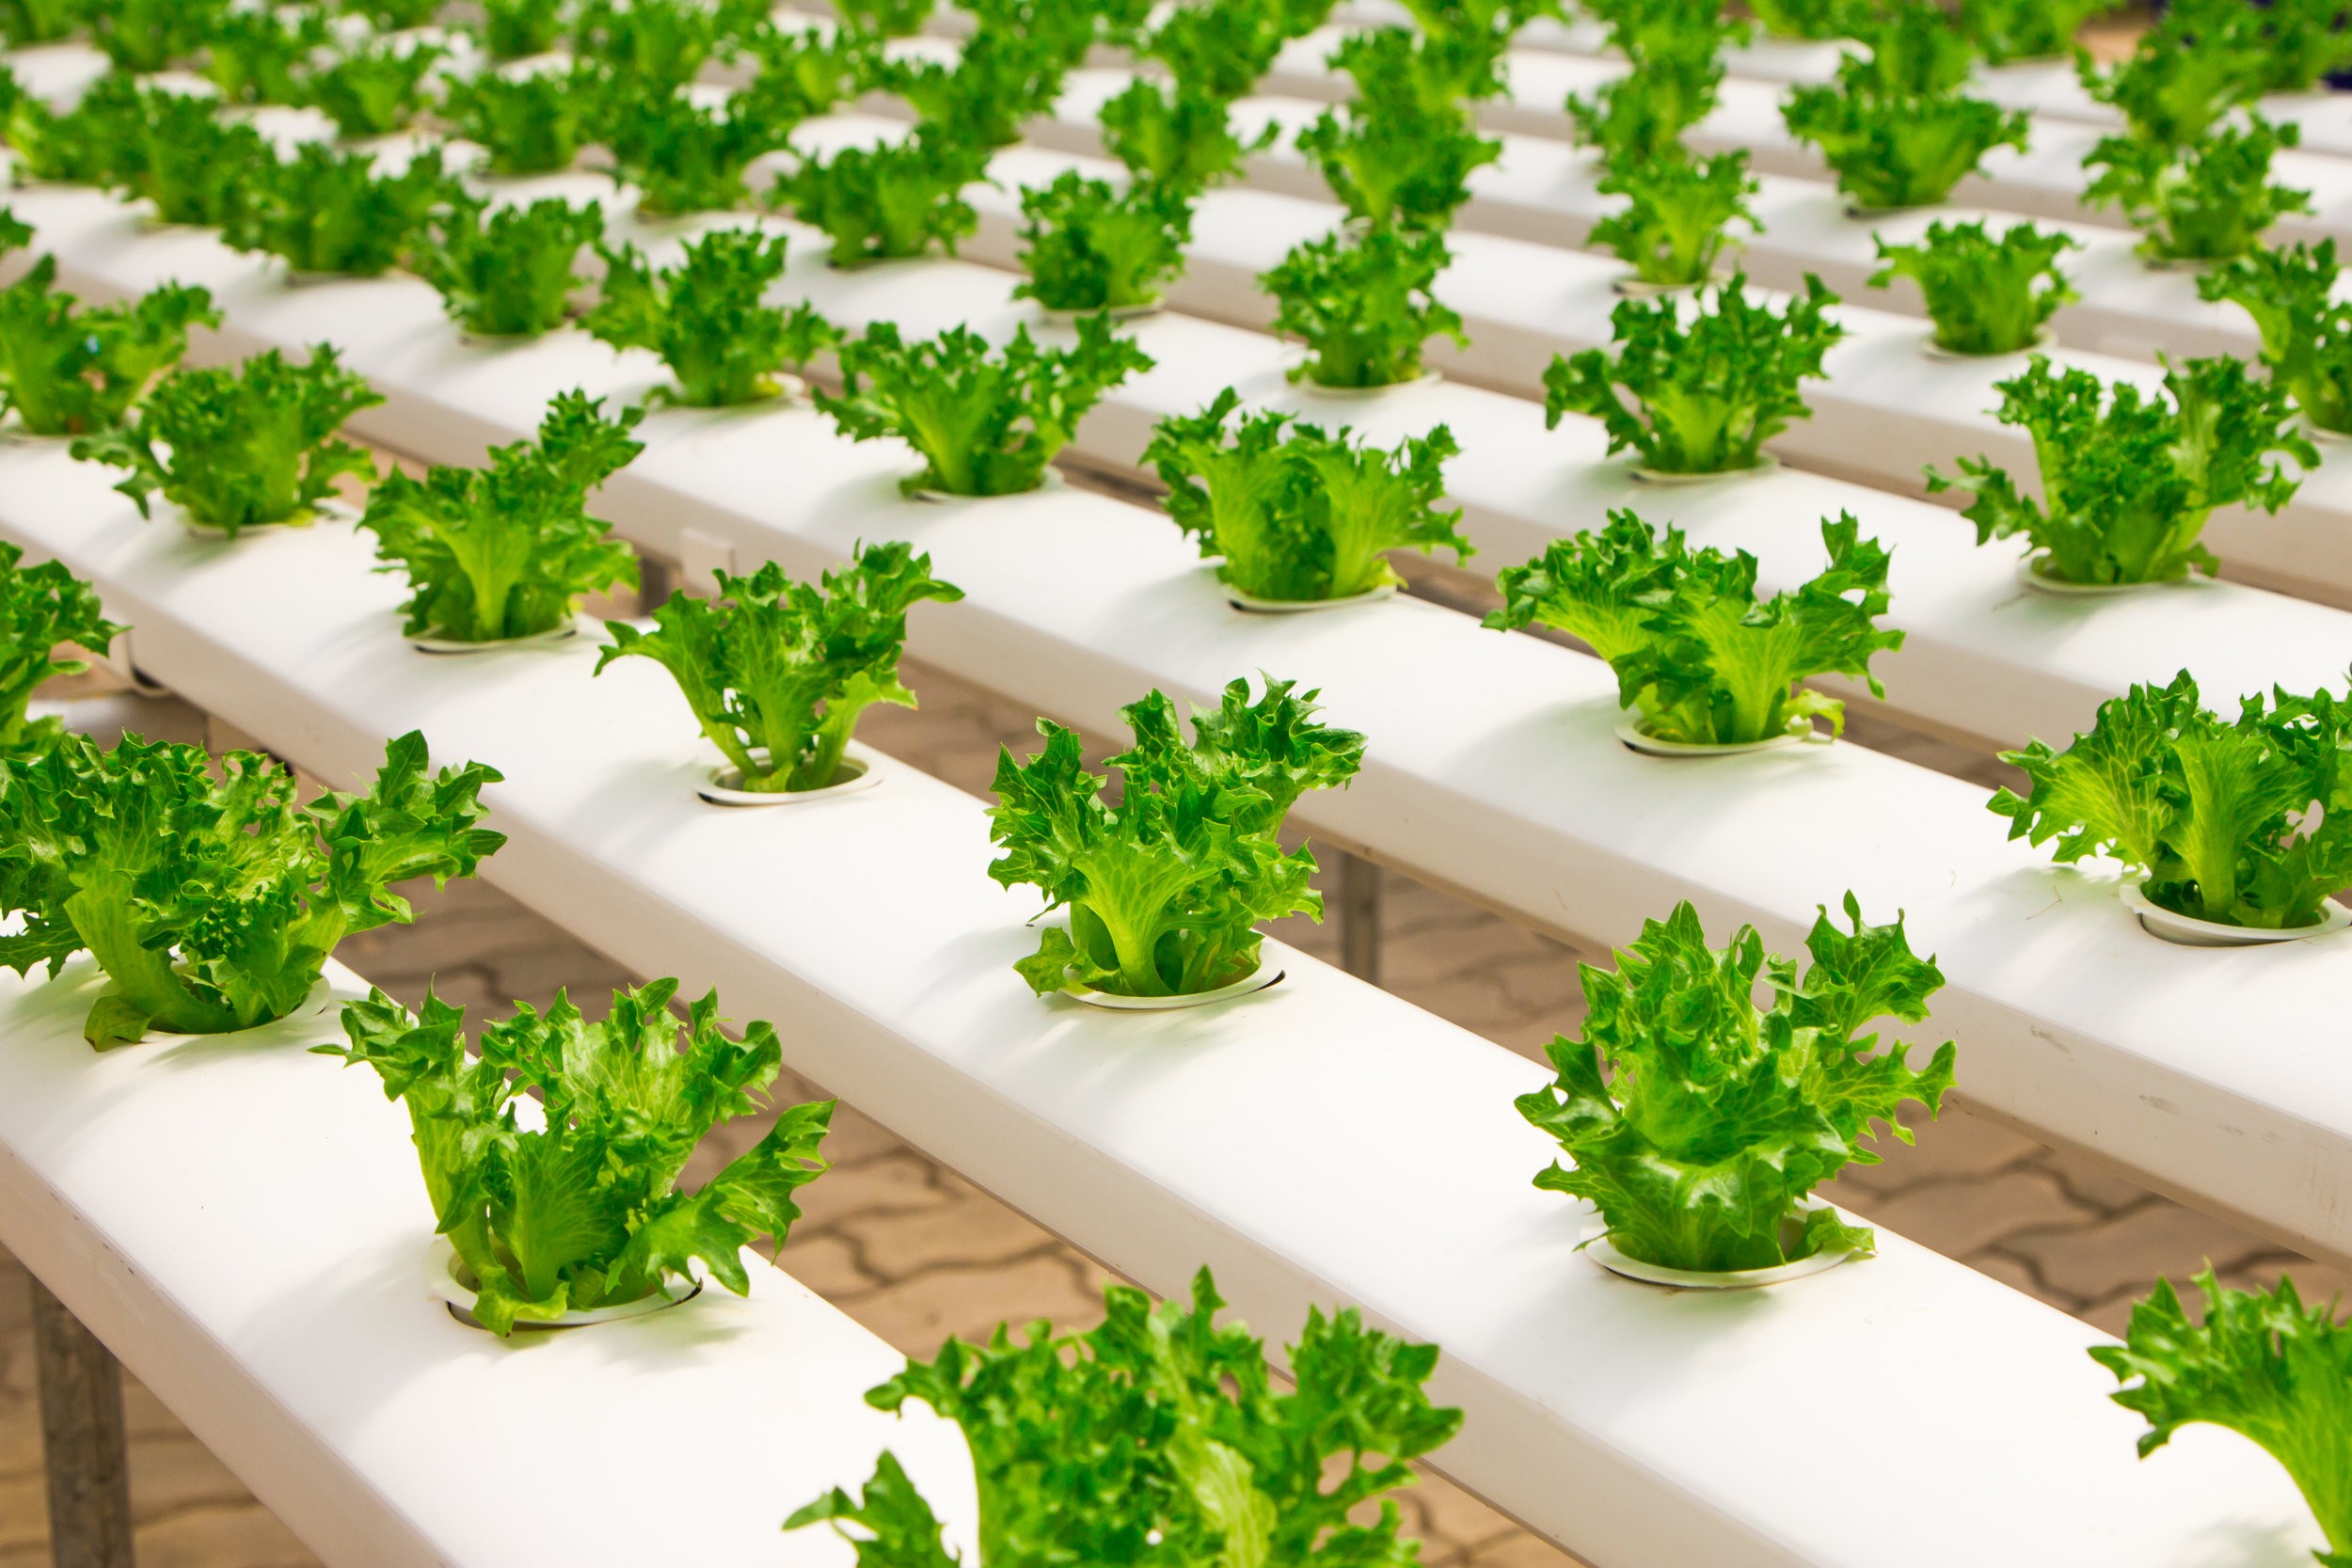 Urban Farming/ Rooftop Farming - You are planning a commercial hydroponic or aquaponic farm? Contact us! We can also help you with our competent and experienced partners for   hydroponic or aquaponic farms.